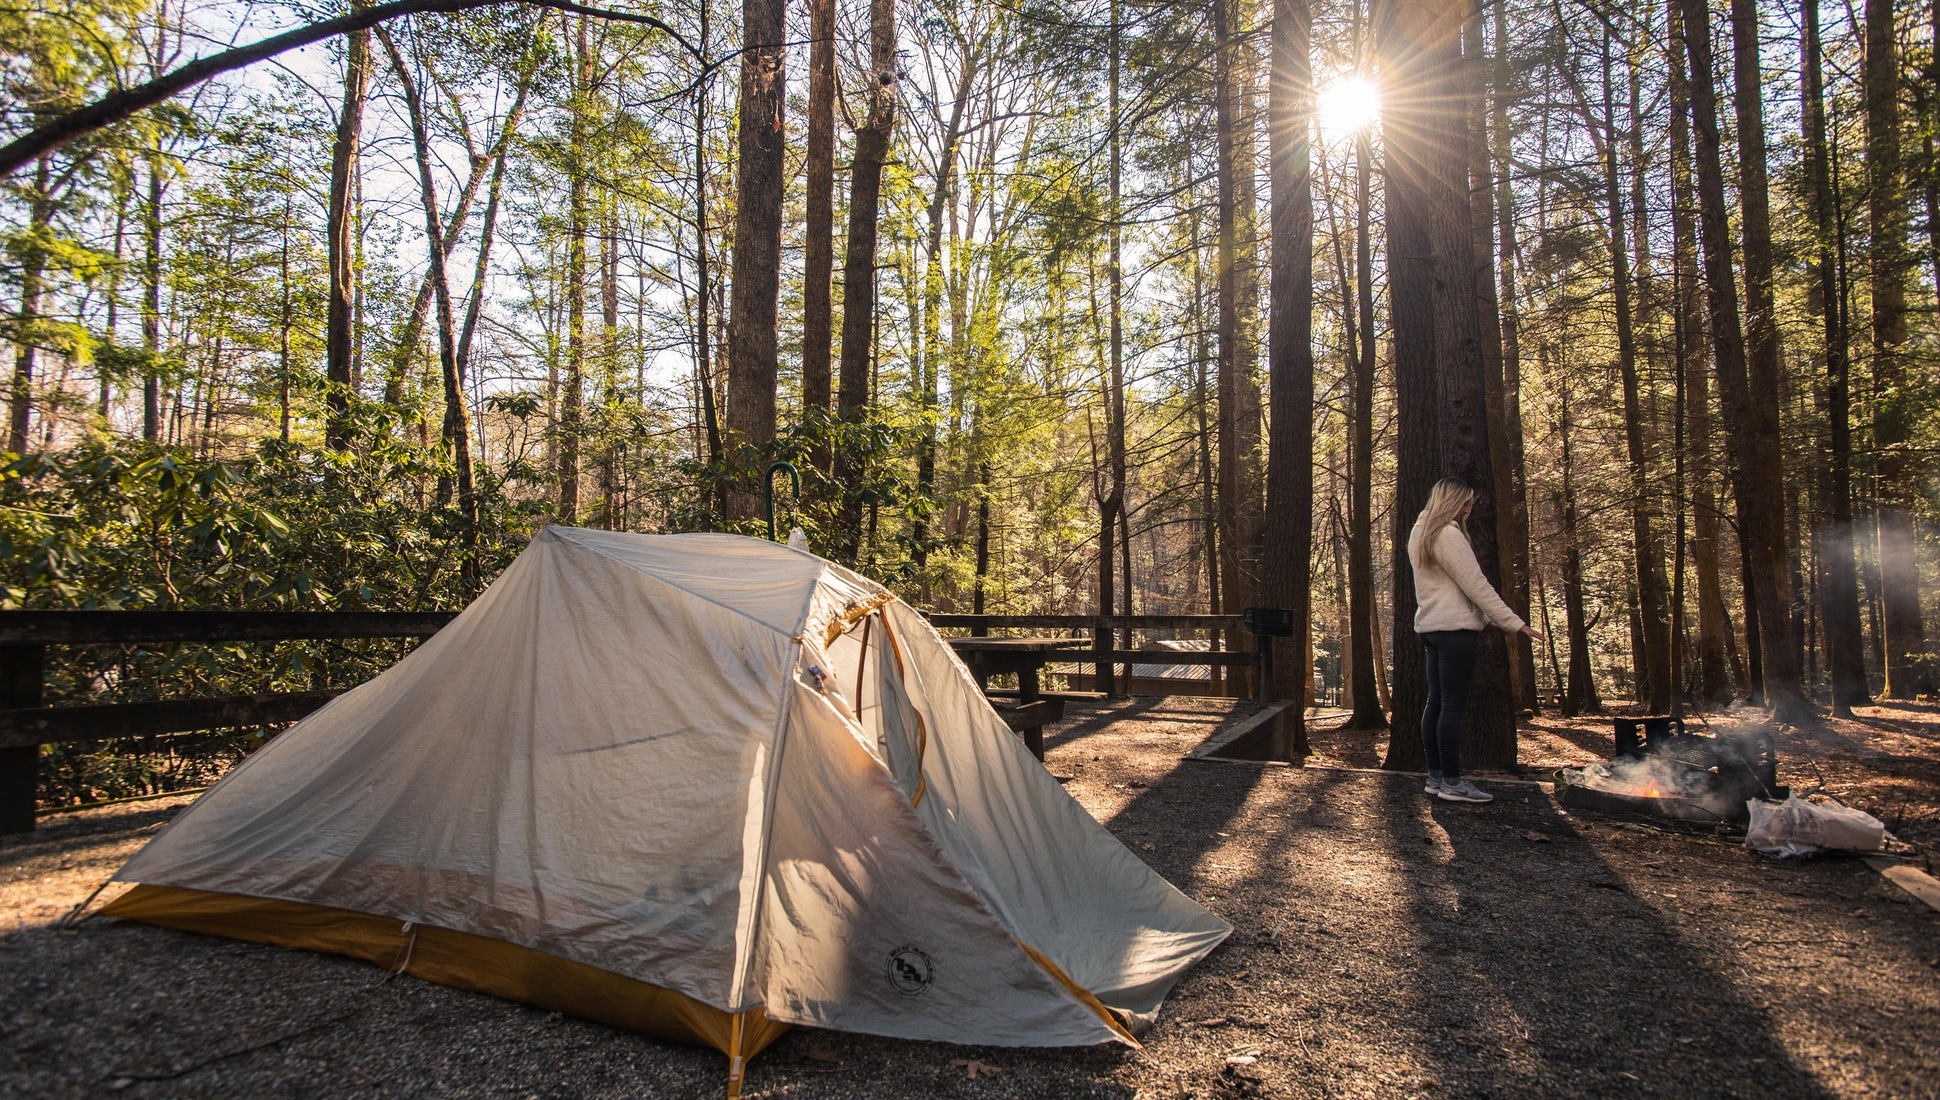 The Best Places for Camping in Georgia